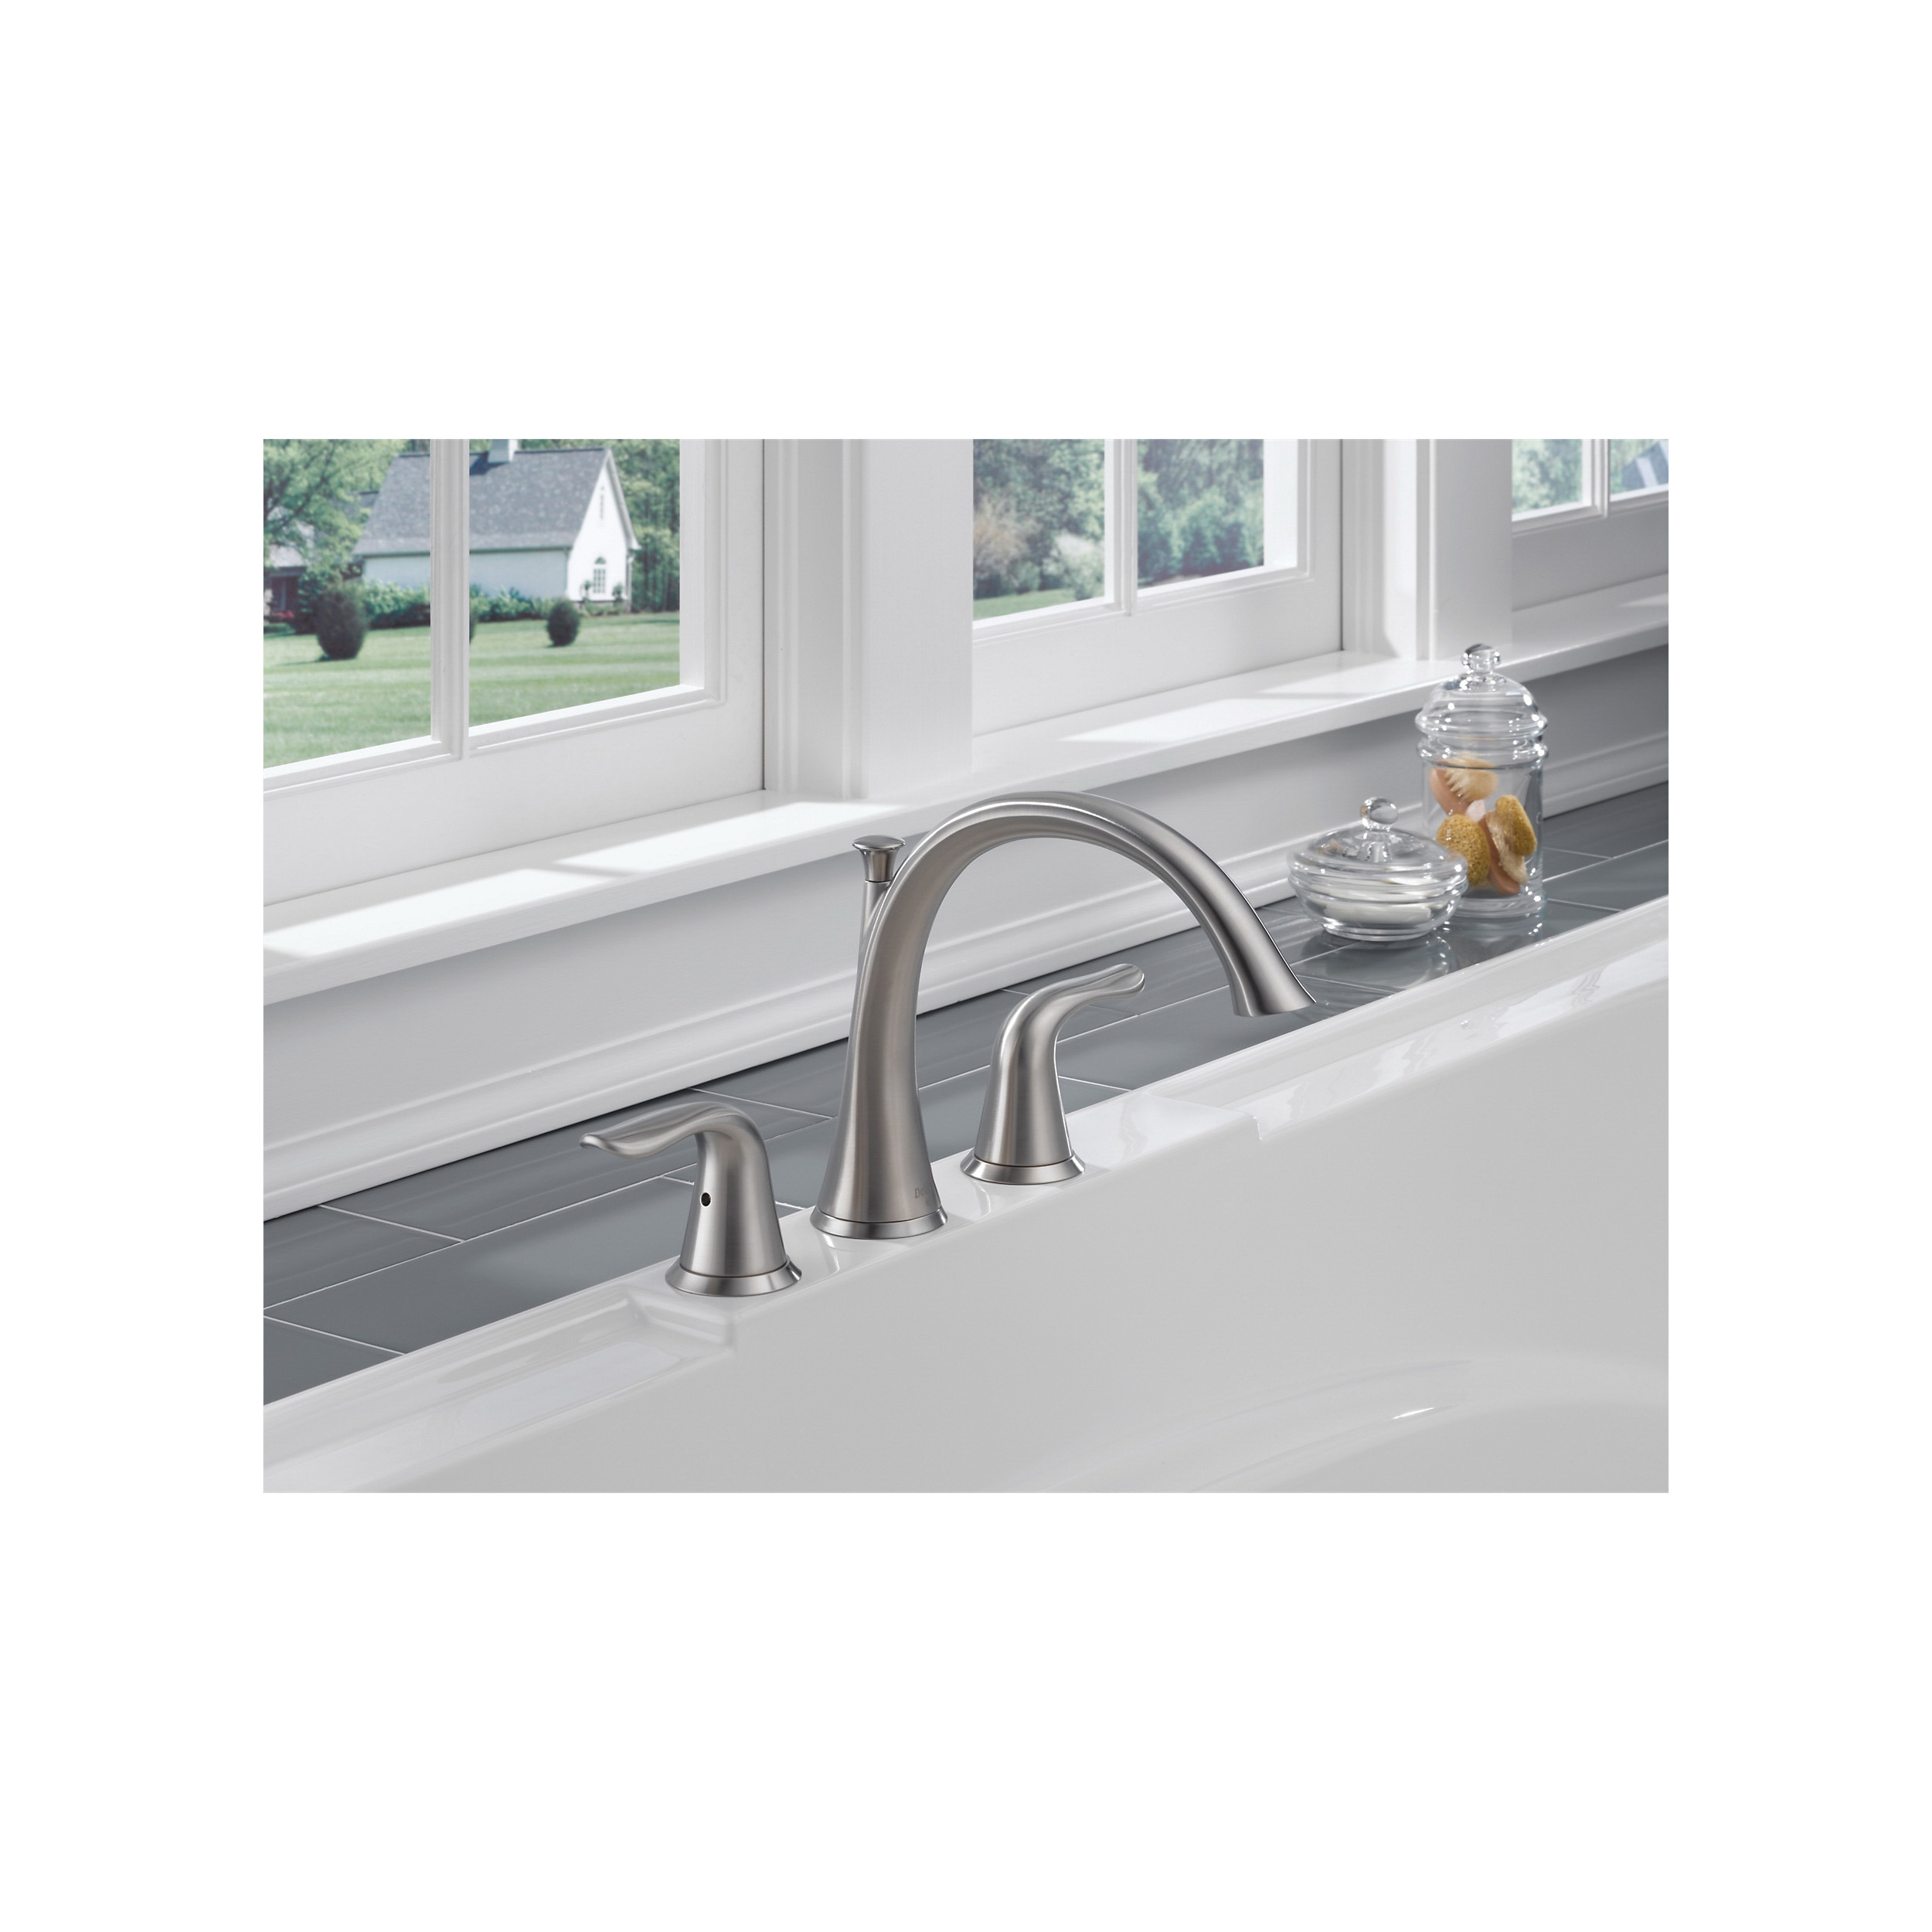 DELTA® T2738-SS Roman Tub Trim, Lahara®, 18 gpm, 8 to 16 in Center, Stainless Steel, 2 Handles, Function: Traditional, Hand Shower Yes/No: No, Domestic